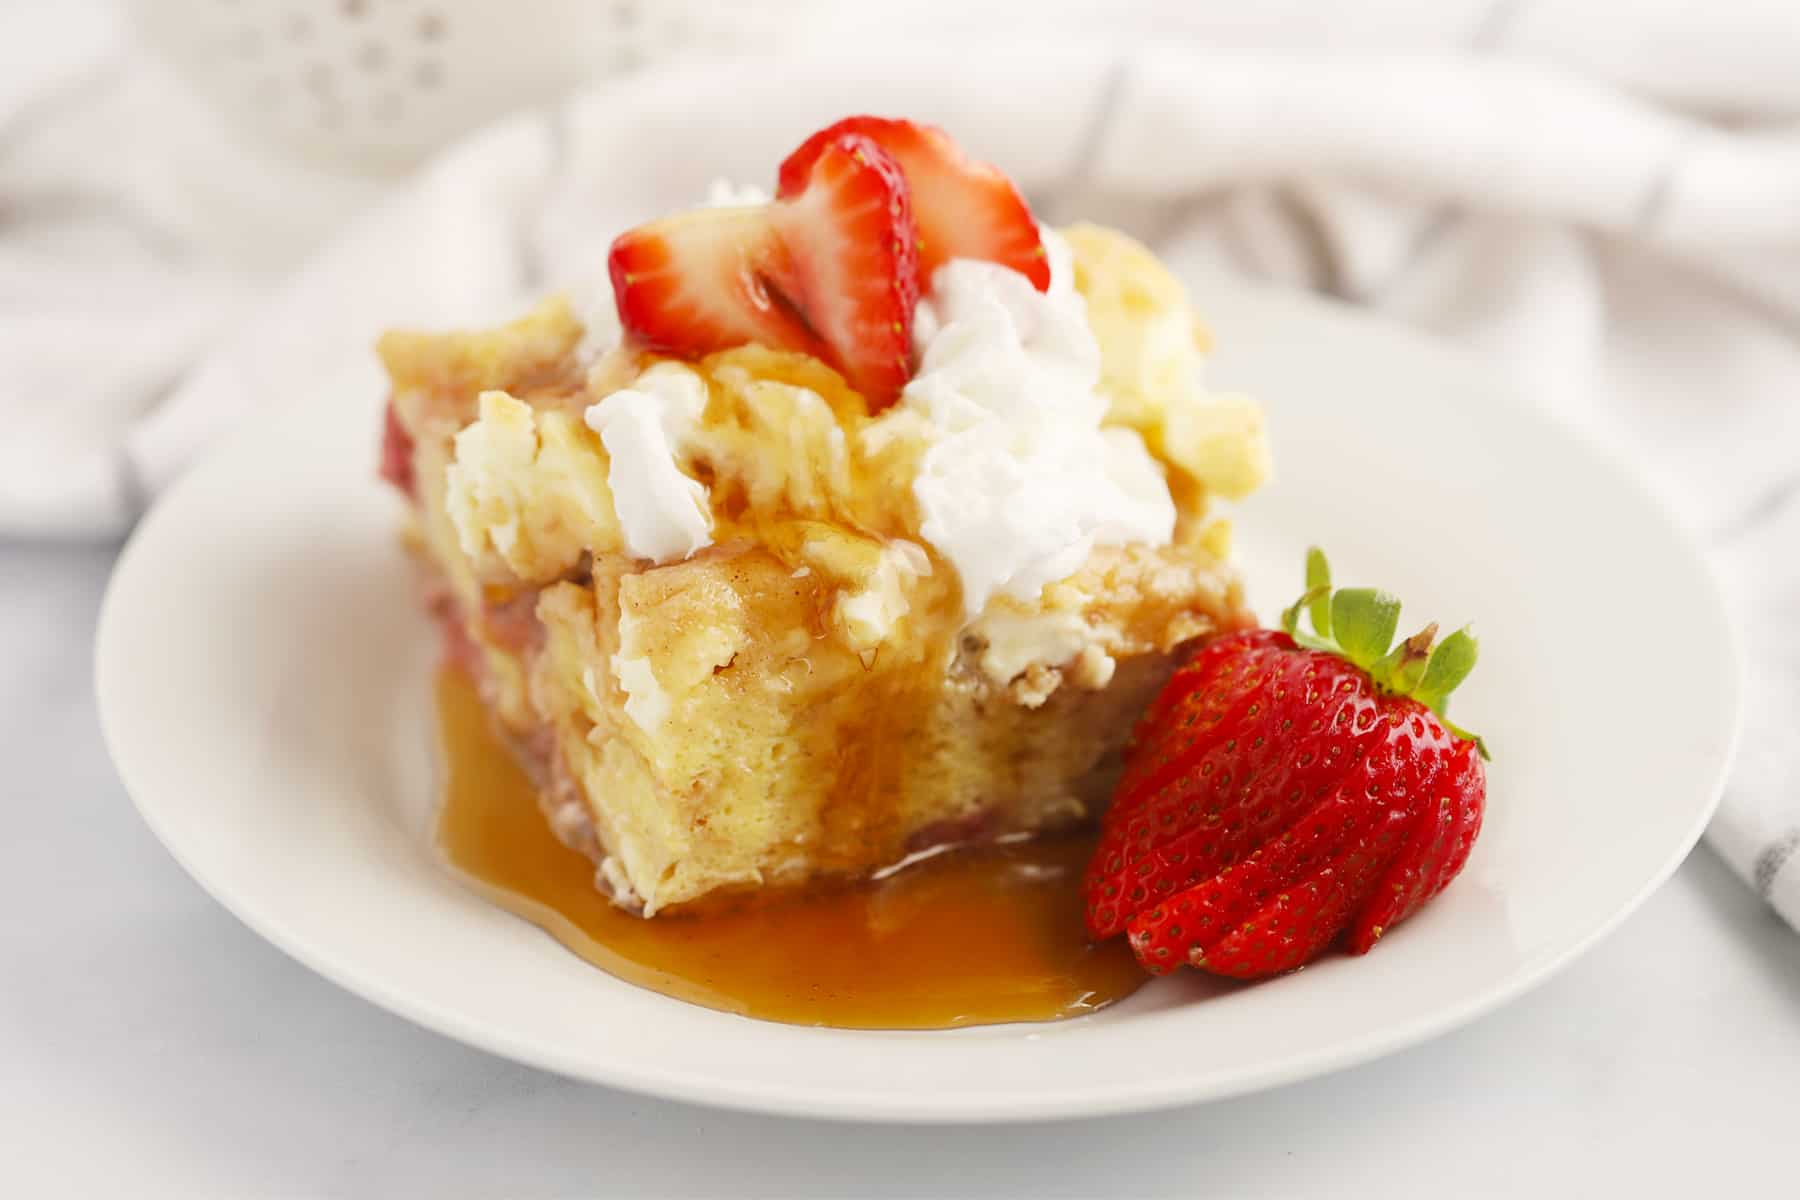 A white plate with a slice of French toast bake topped with whipped cream, strawberries and syrup.